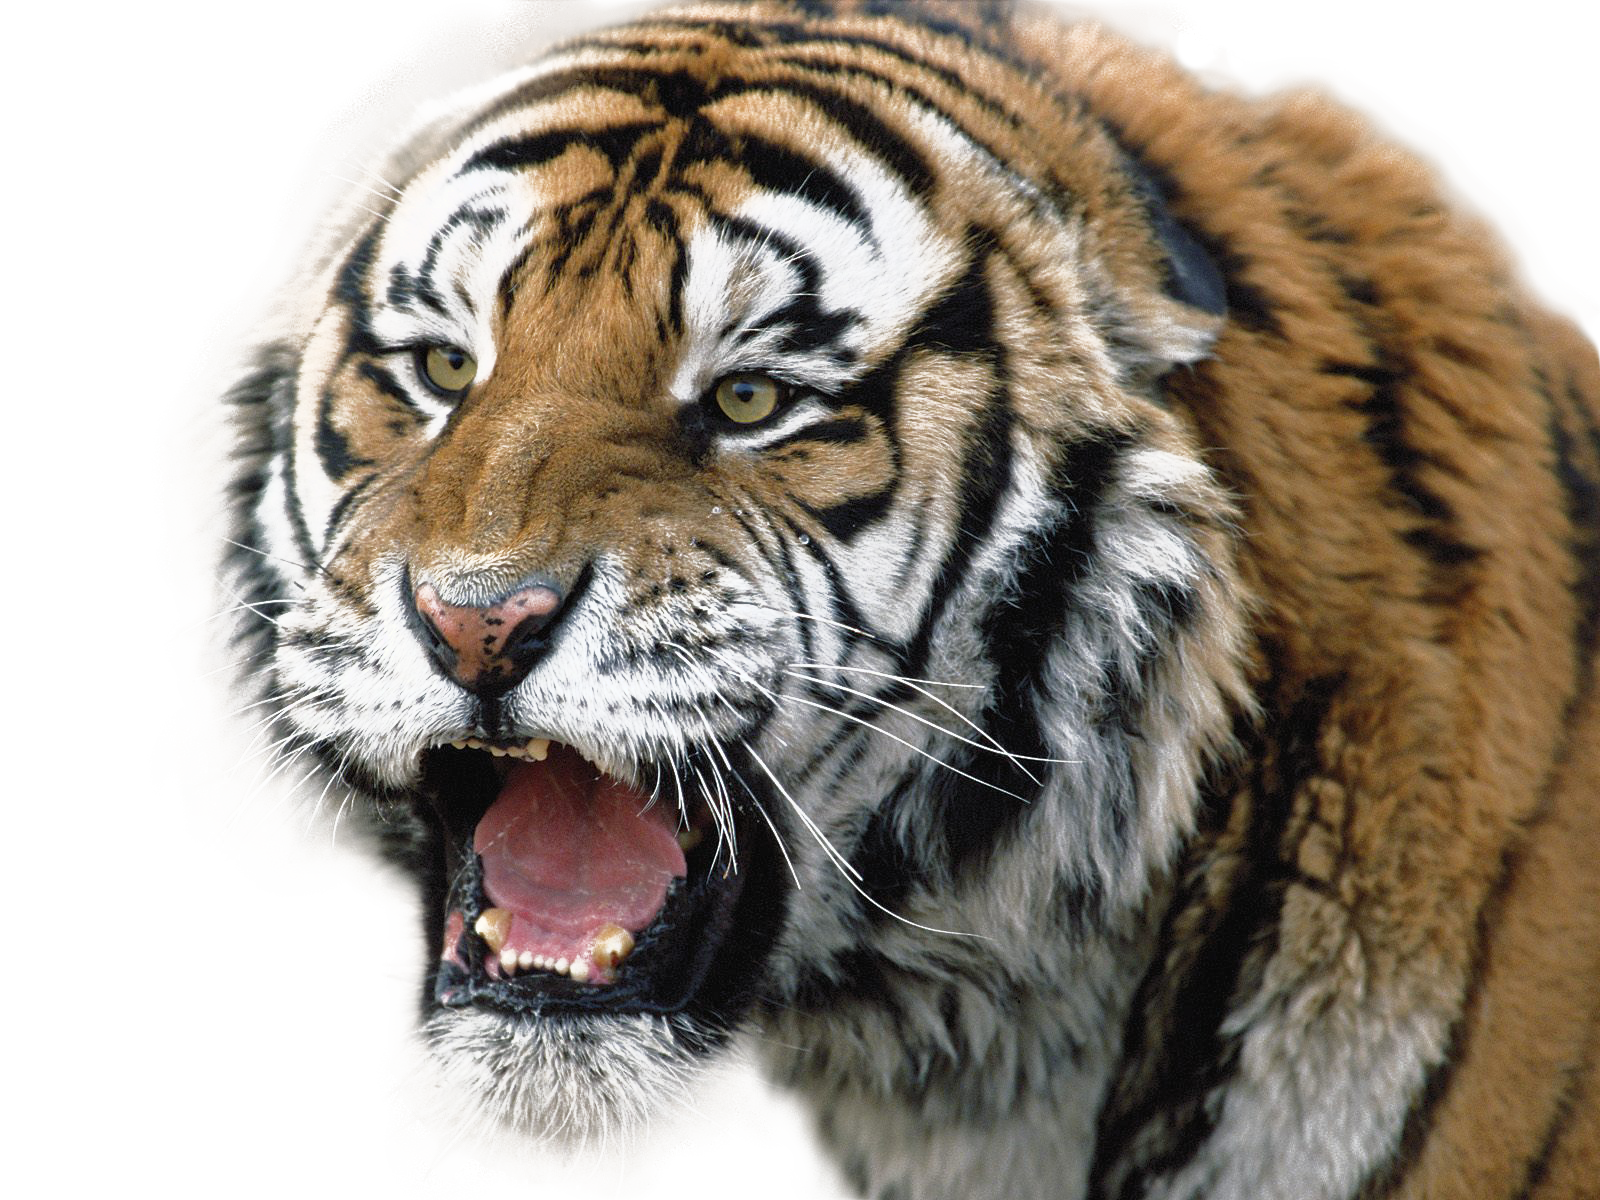 Tiger Transparent PNG Pictures - Free Icons and PNG ...